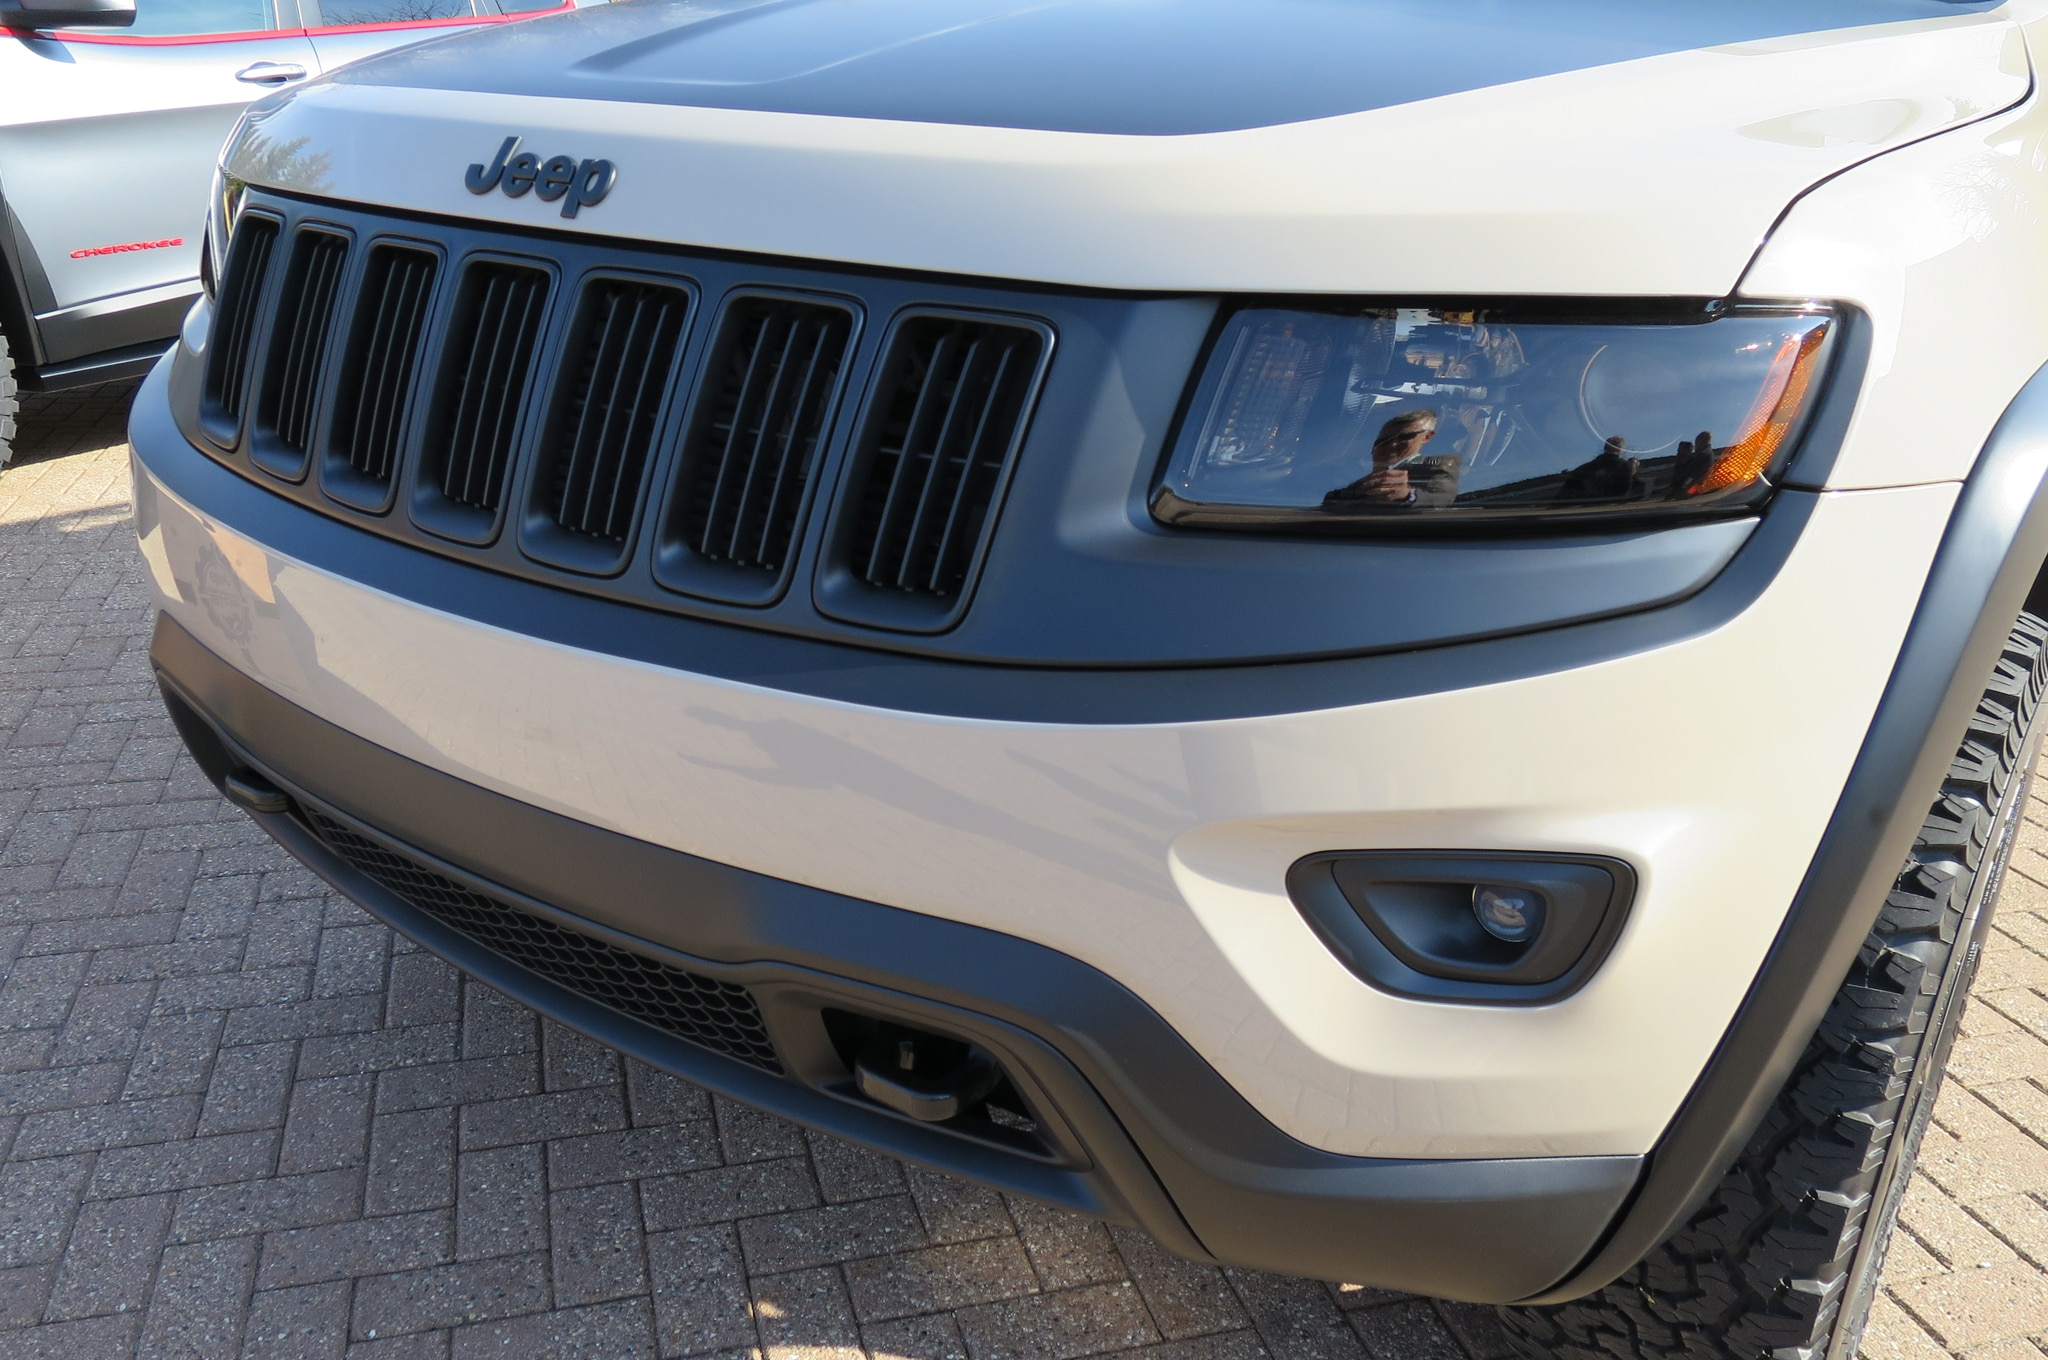 Jeep Grand Cherokee EcoDiesel Trail Warrior Concept front grille